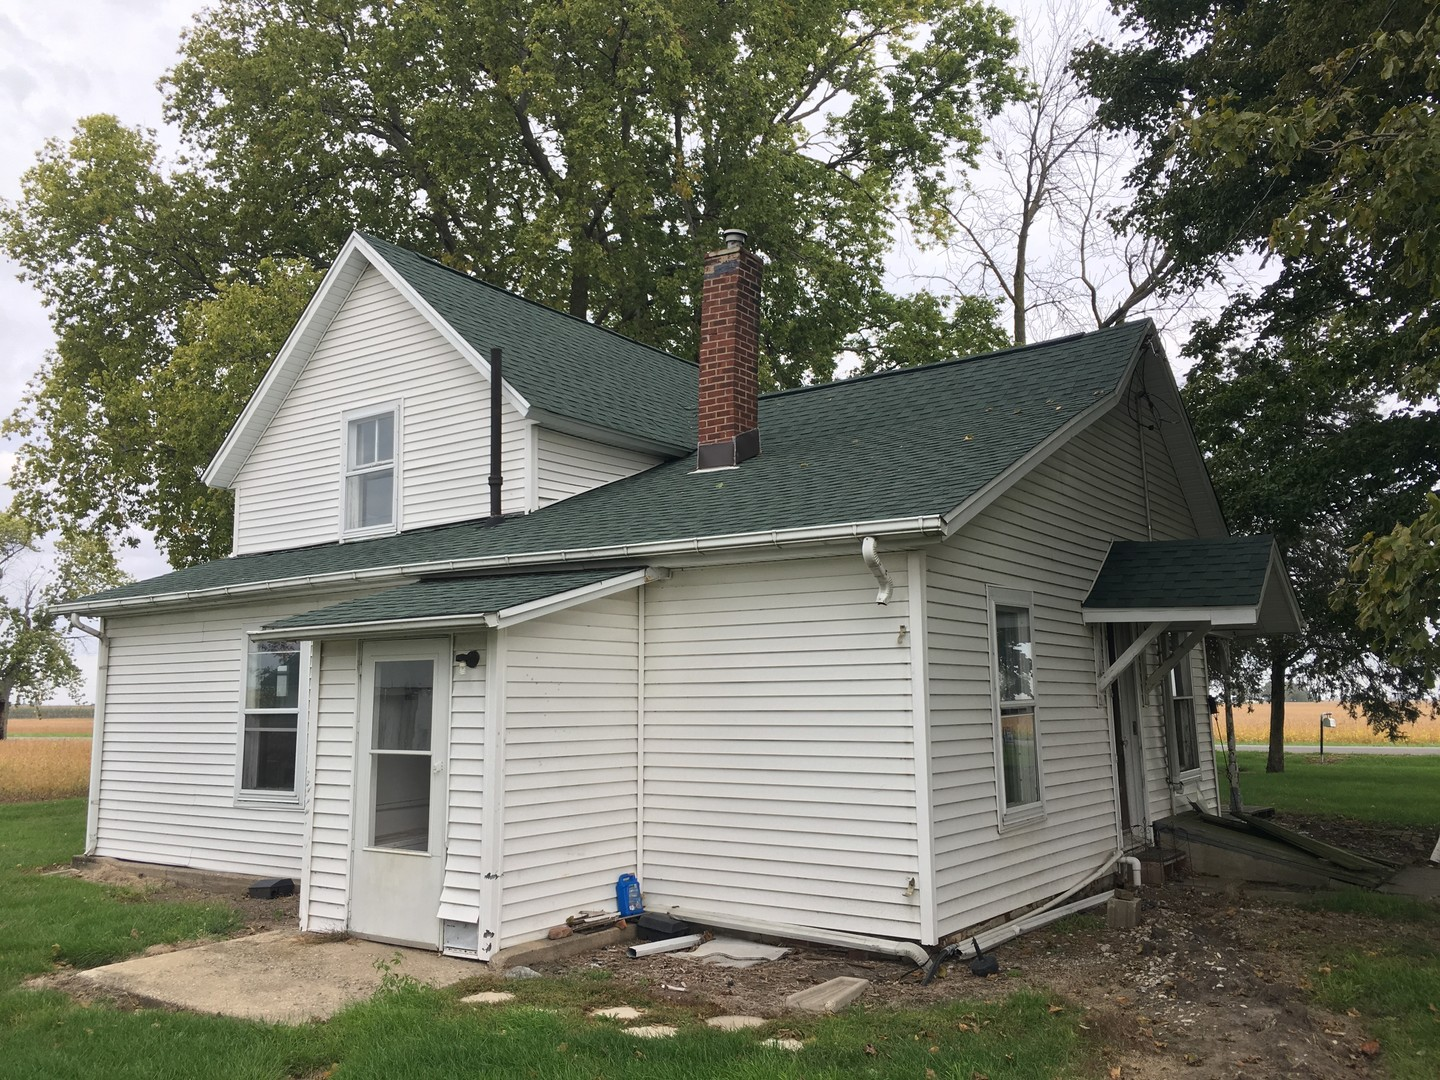 315 2800n, Fisher, Illinois, 61843